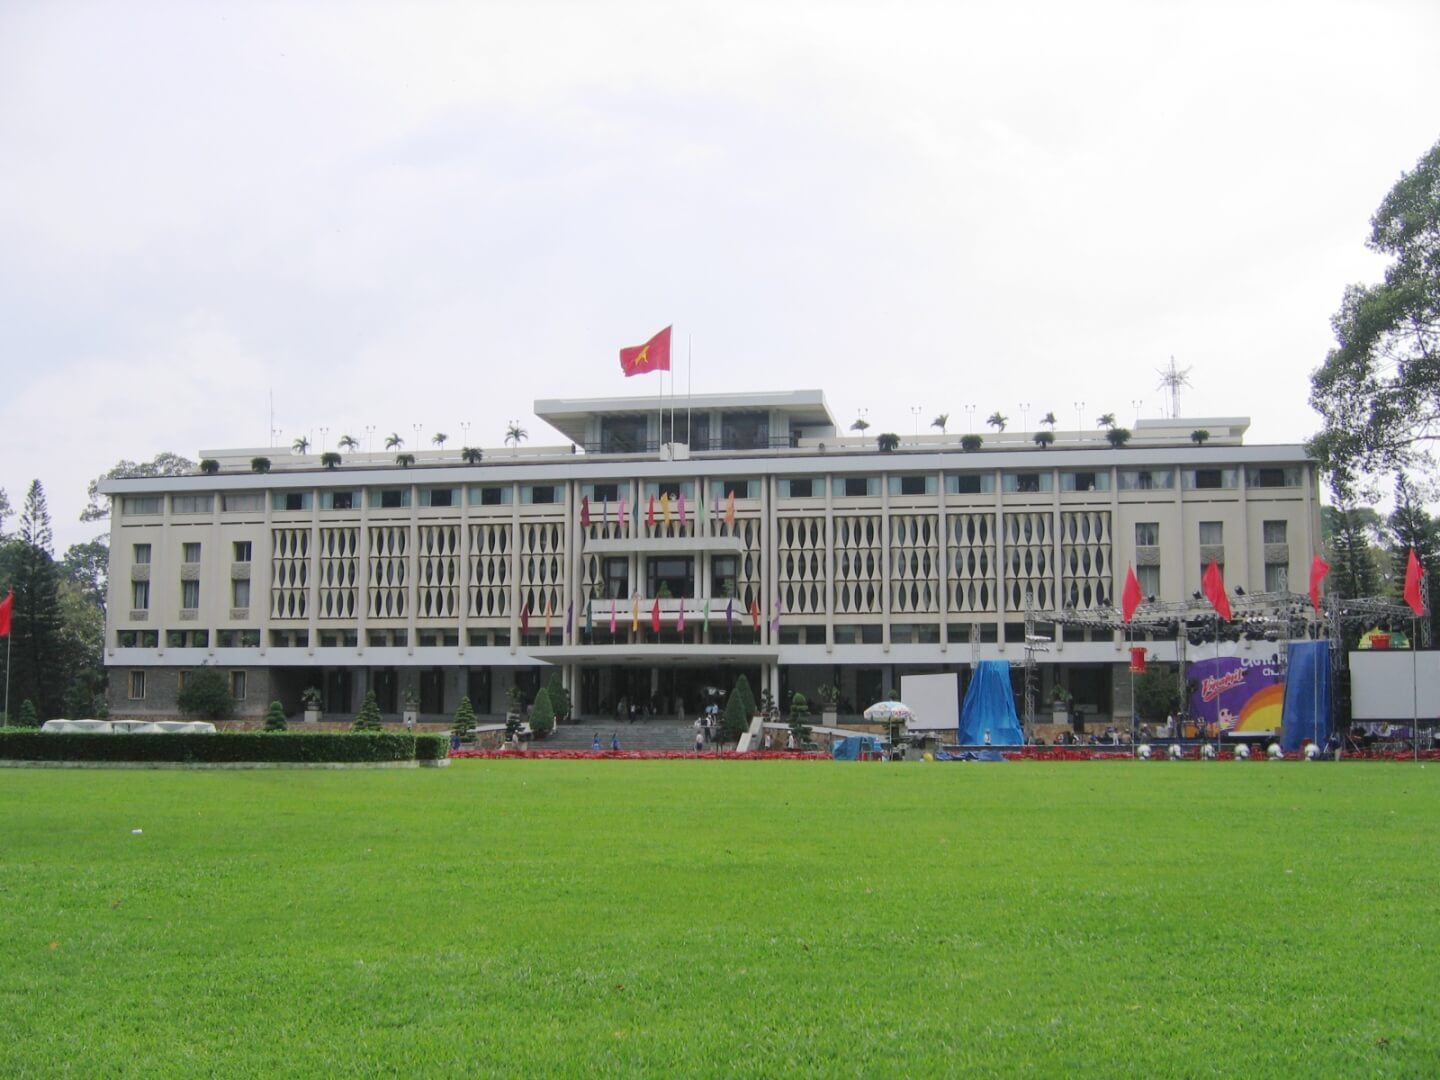 """HCMC Reunification Palace"" por Lerdsuwa - Obra do próprio. Licenciado sob CC BY-SA 3.0, via Wikimedia Commons - https://commons.wikimedia.org/wiki/File:HCMC_Reunification_Palace.jpg#/media/File:HCMC_Reunification_Palace.jpg"